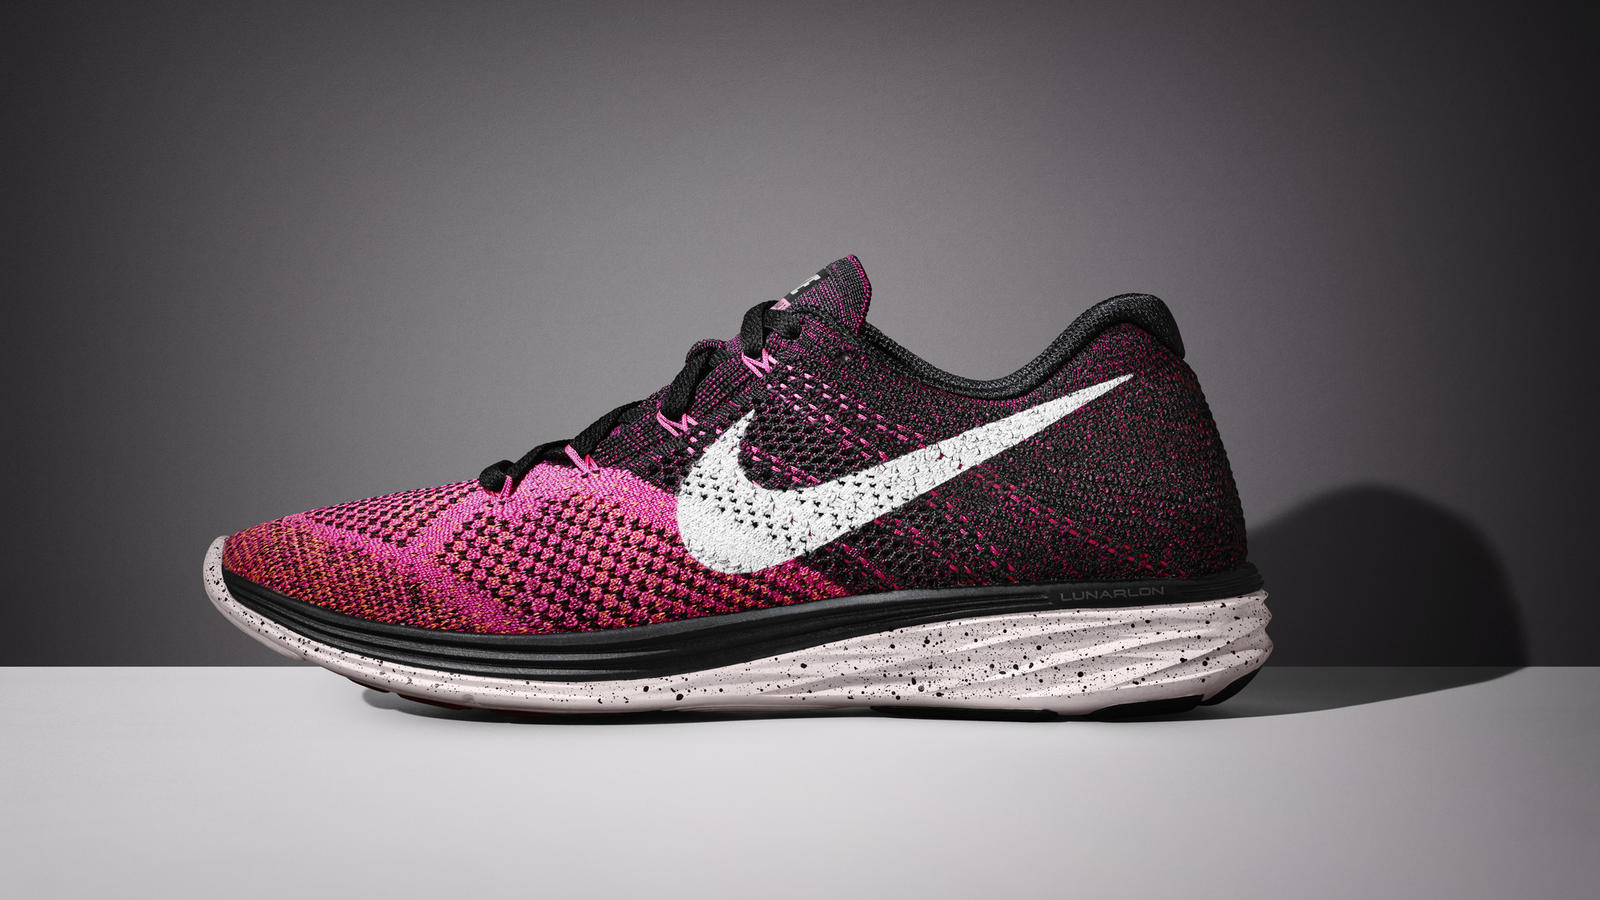 wholesale dealer 08501 54281 Impossibly Light and Incredibly Strong Marries Soft and Responsive  The Nike  Flyknit Lunar 3